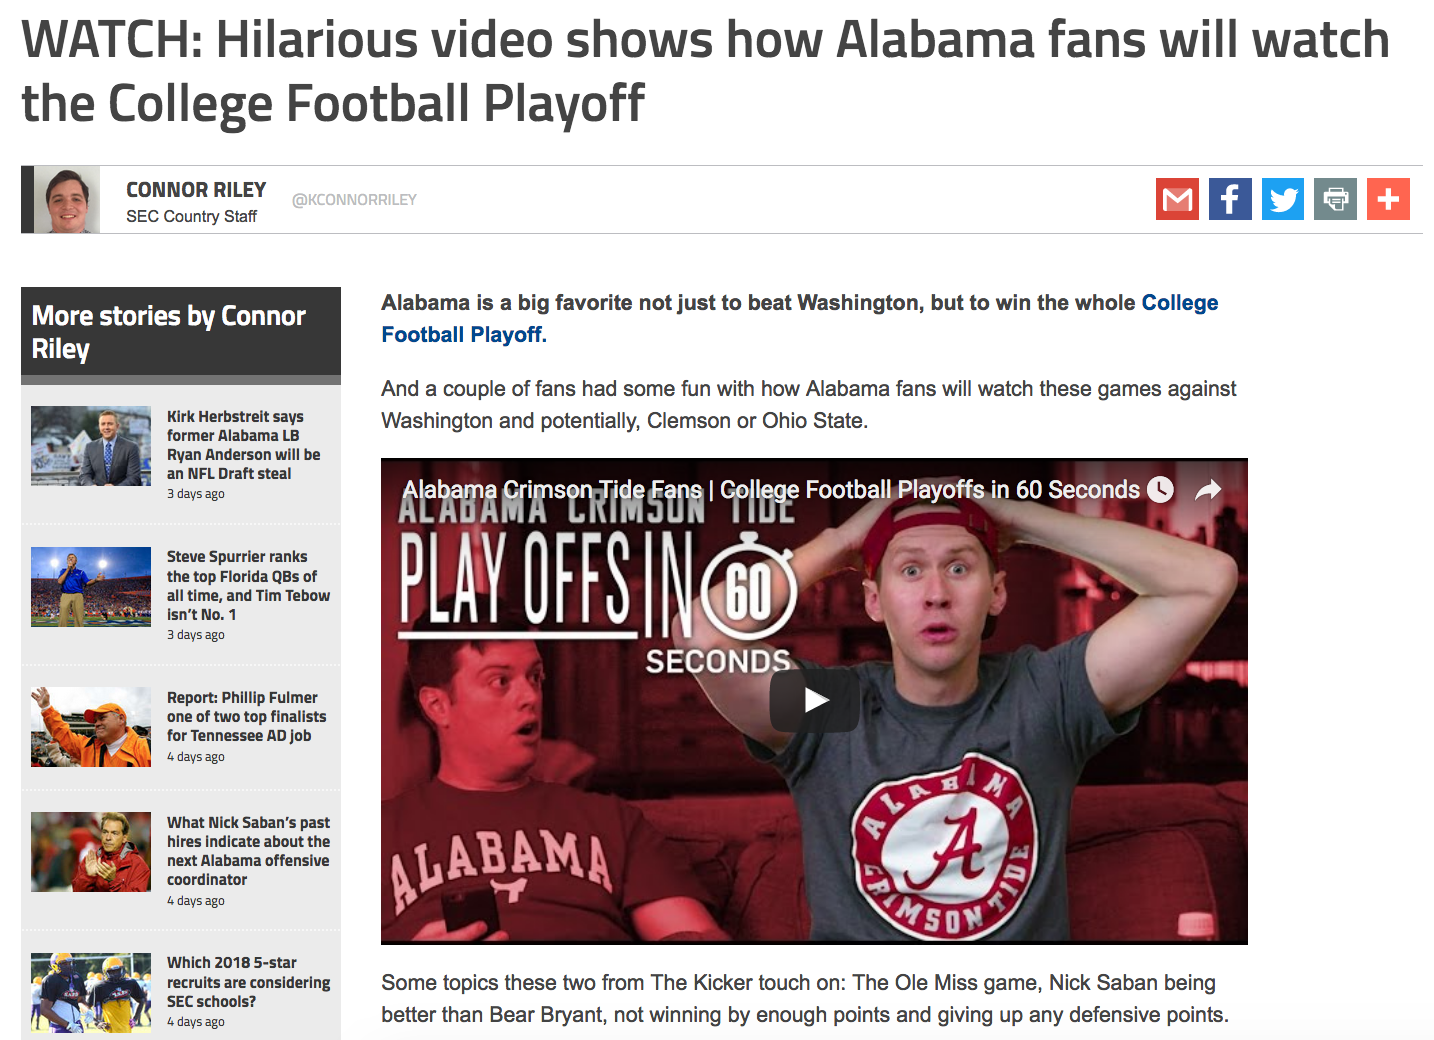 https://www.seccountry.com/alabama/watch-hilarious-video-shows-alabama-fans-will-watch-college-football-playoff